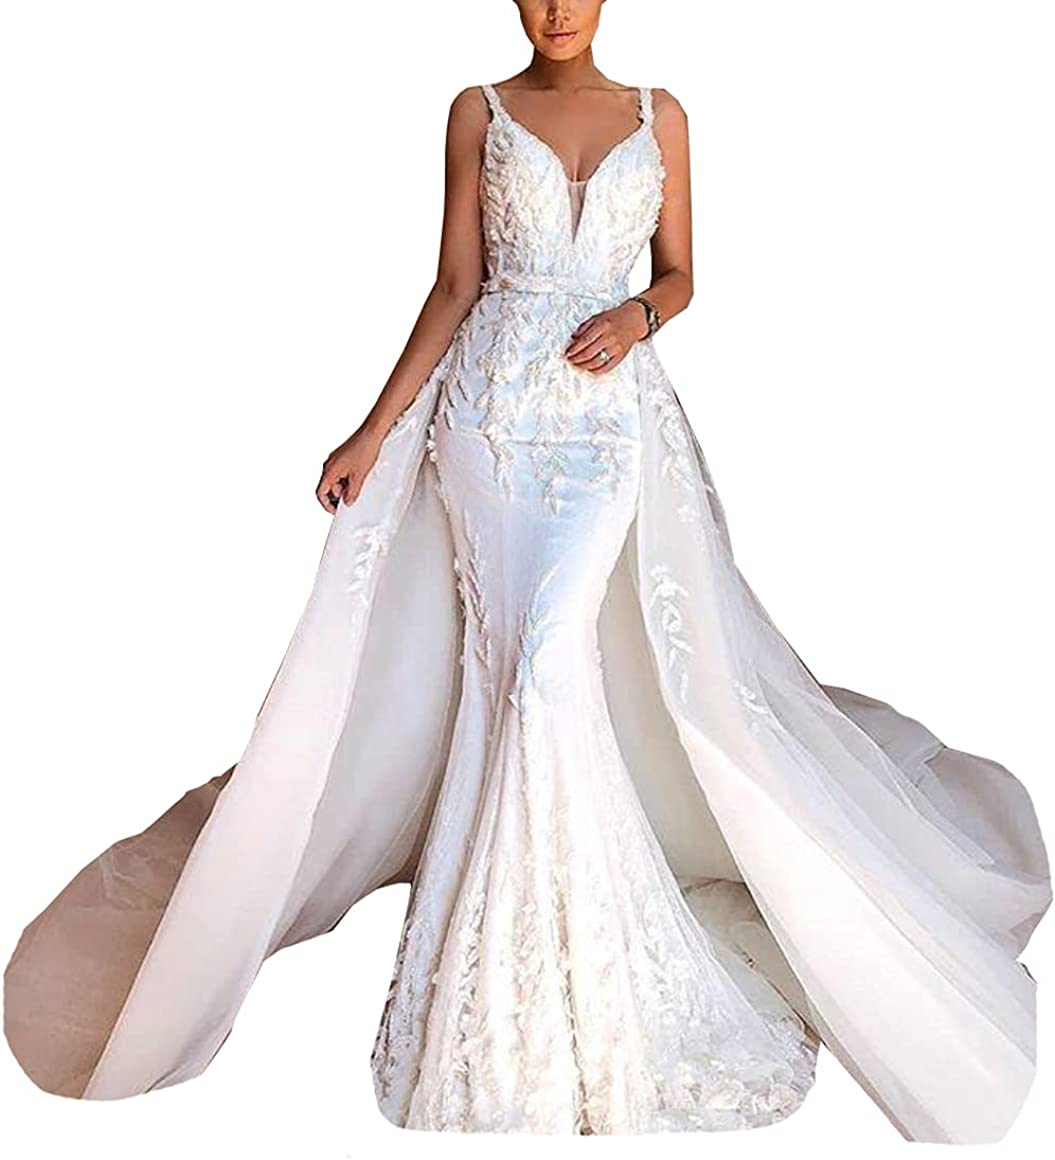 Bridal Ball Gown with Detachable Train Lace Corset Spaghetti Strap Mermaid Wedding Dresses for Bride